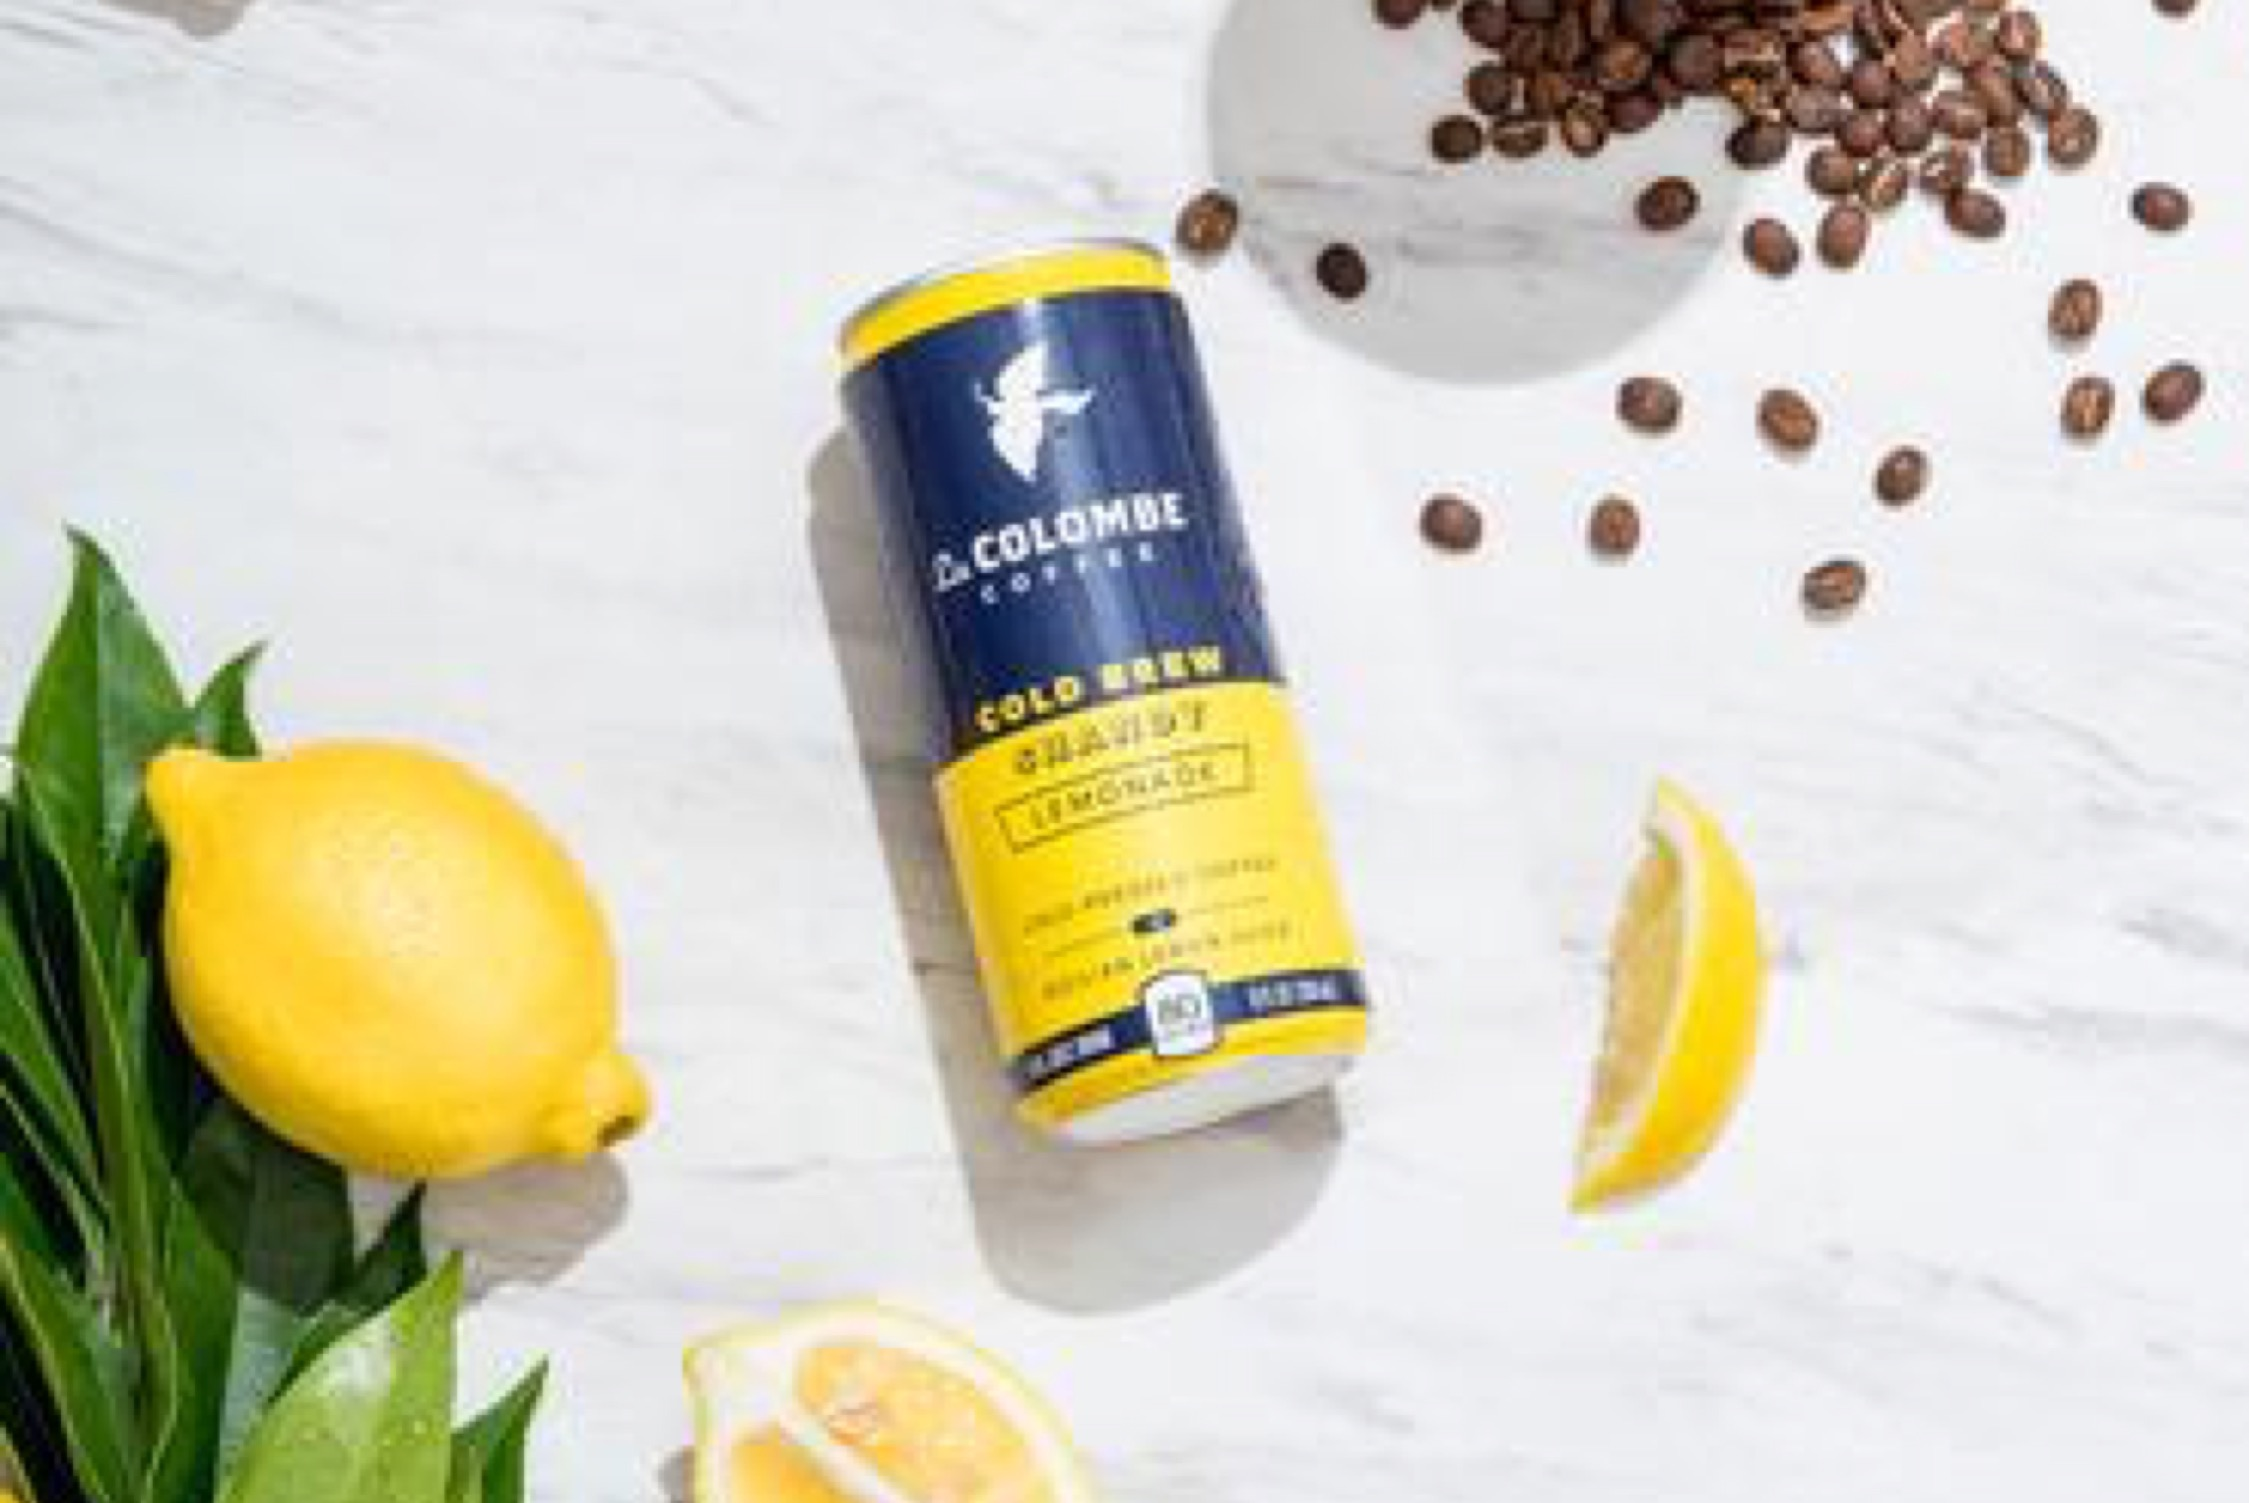 La Colombe Cold Brew Shandy Lemonade